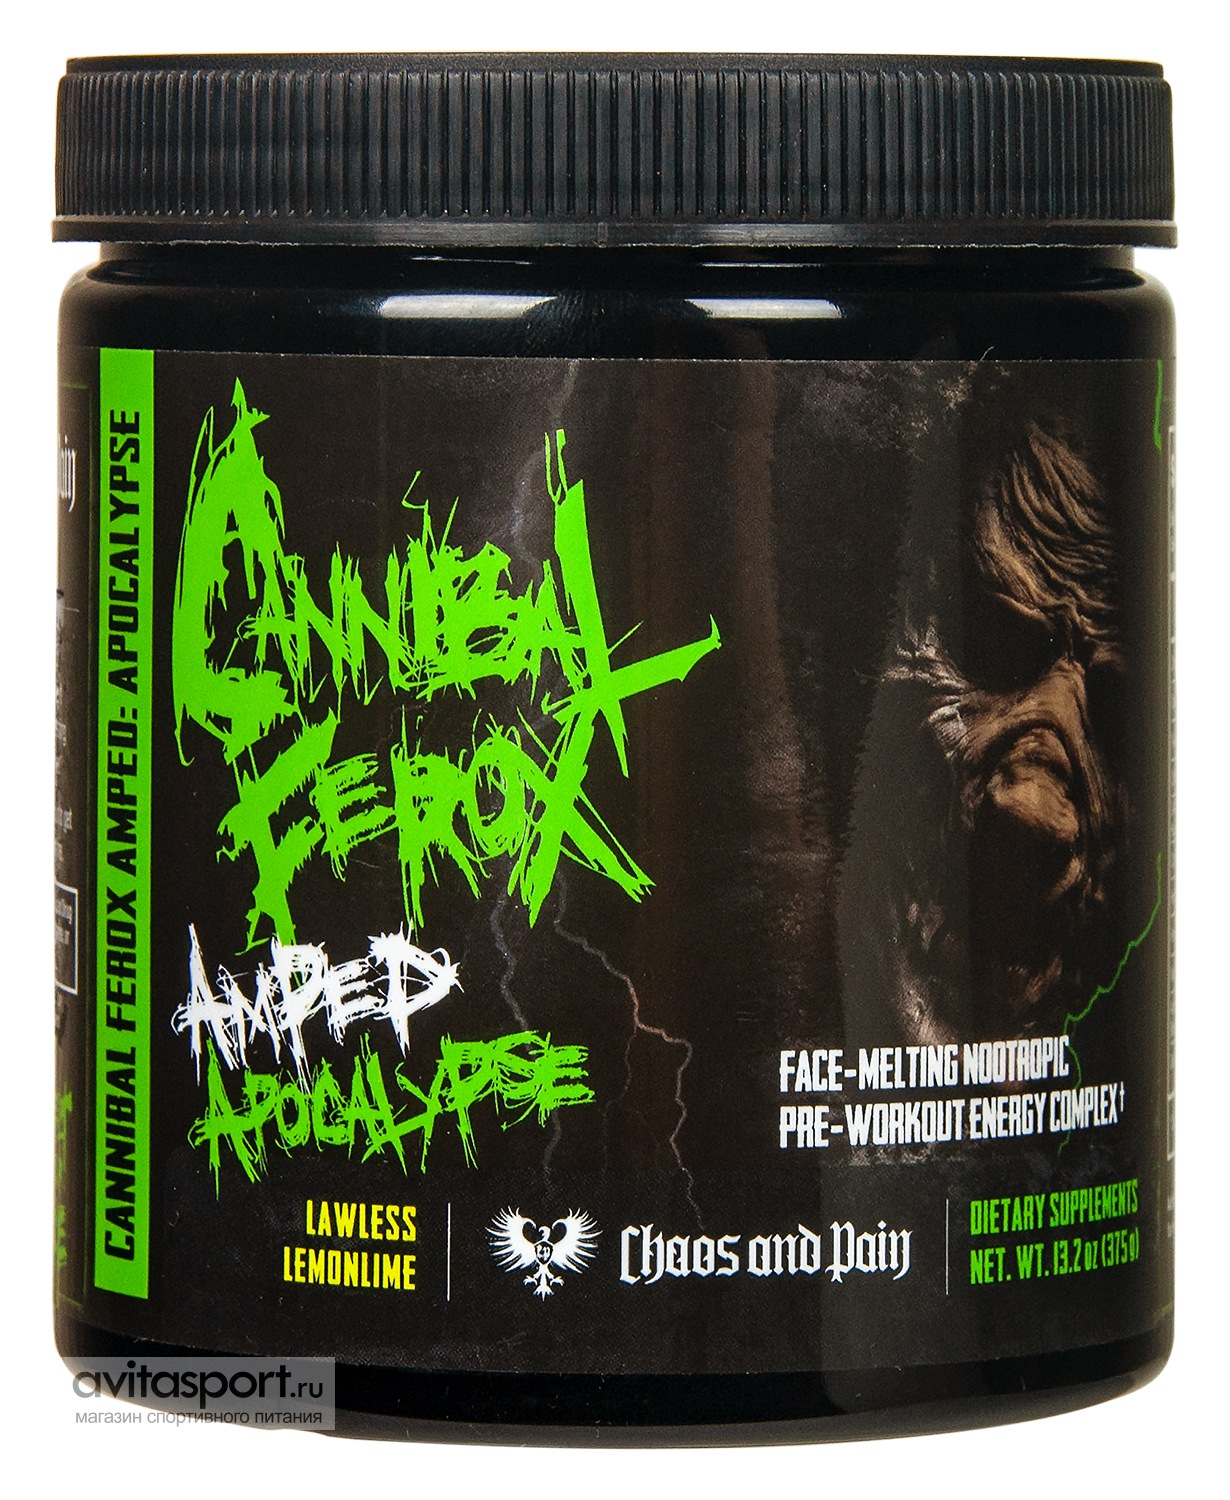 Chaos and Pain Cannibal Ferox 375 г